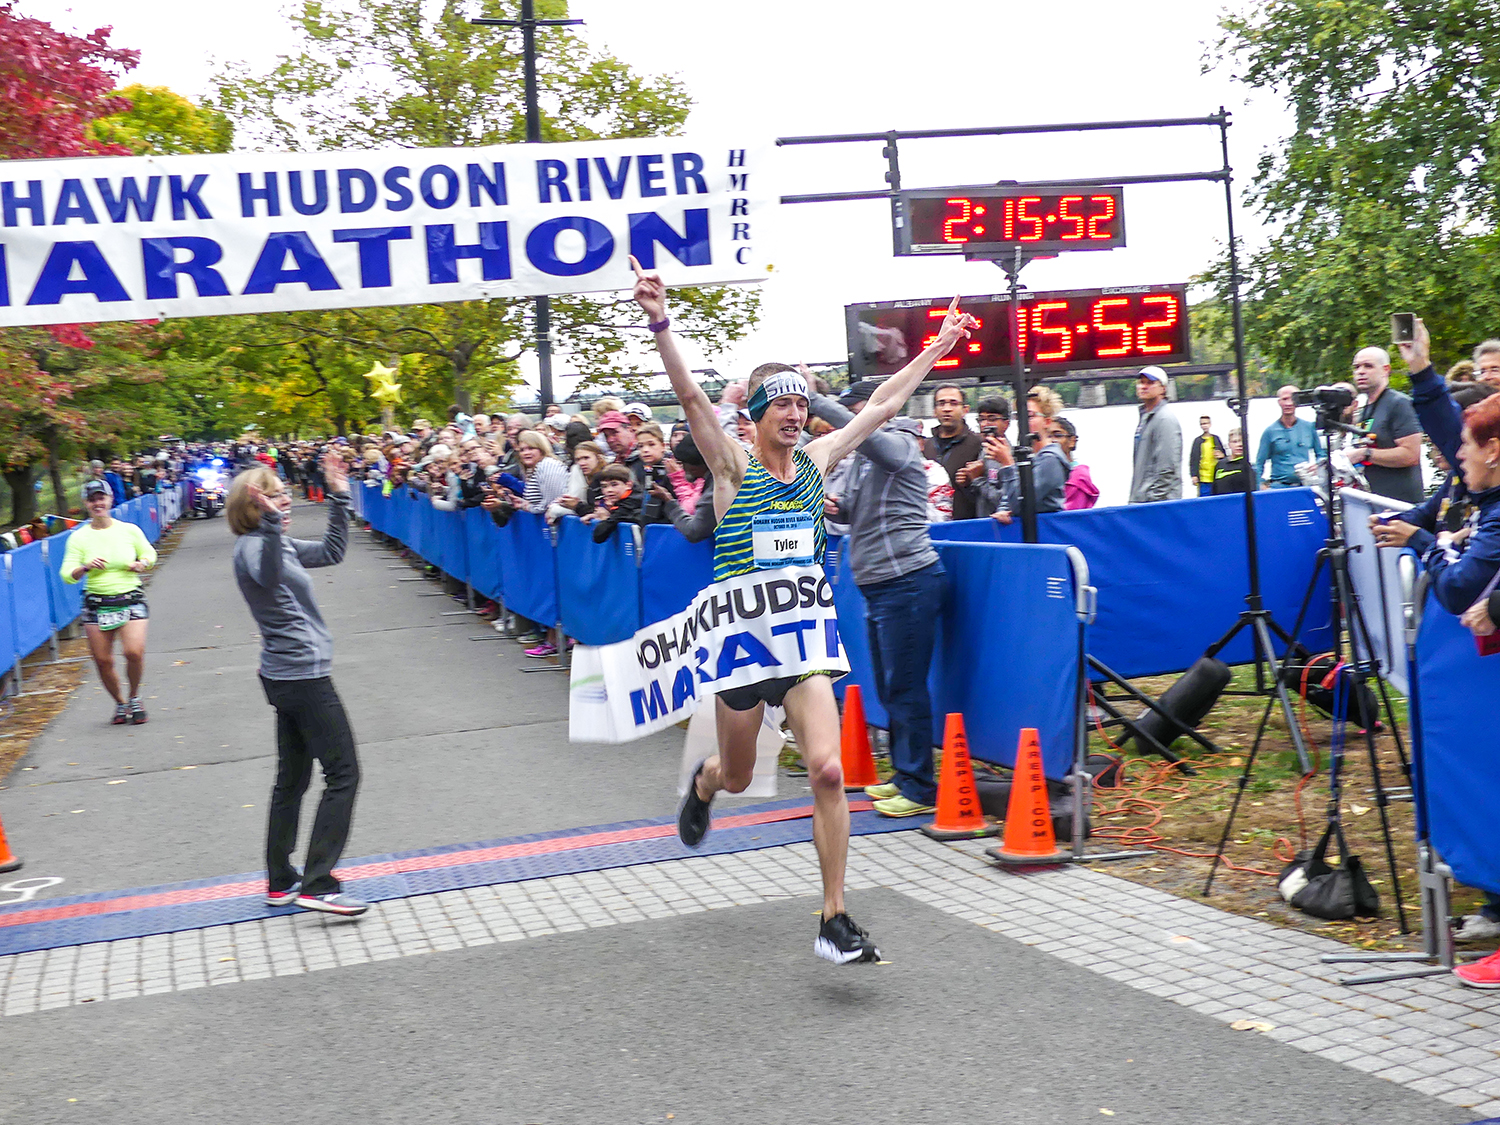 Tyler Andrews wins the 2016 marathon and breaks the course record.  Charles Bishop